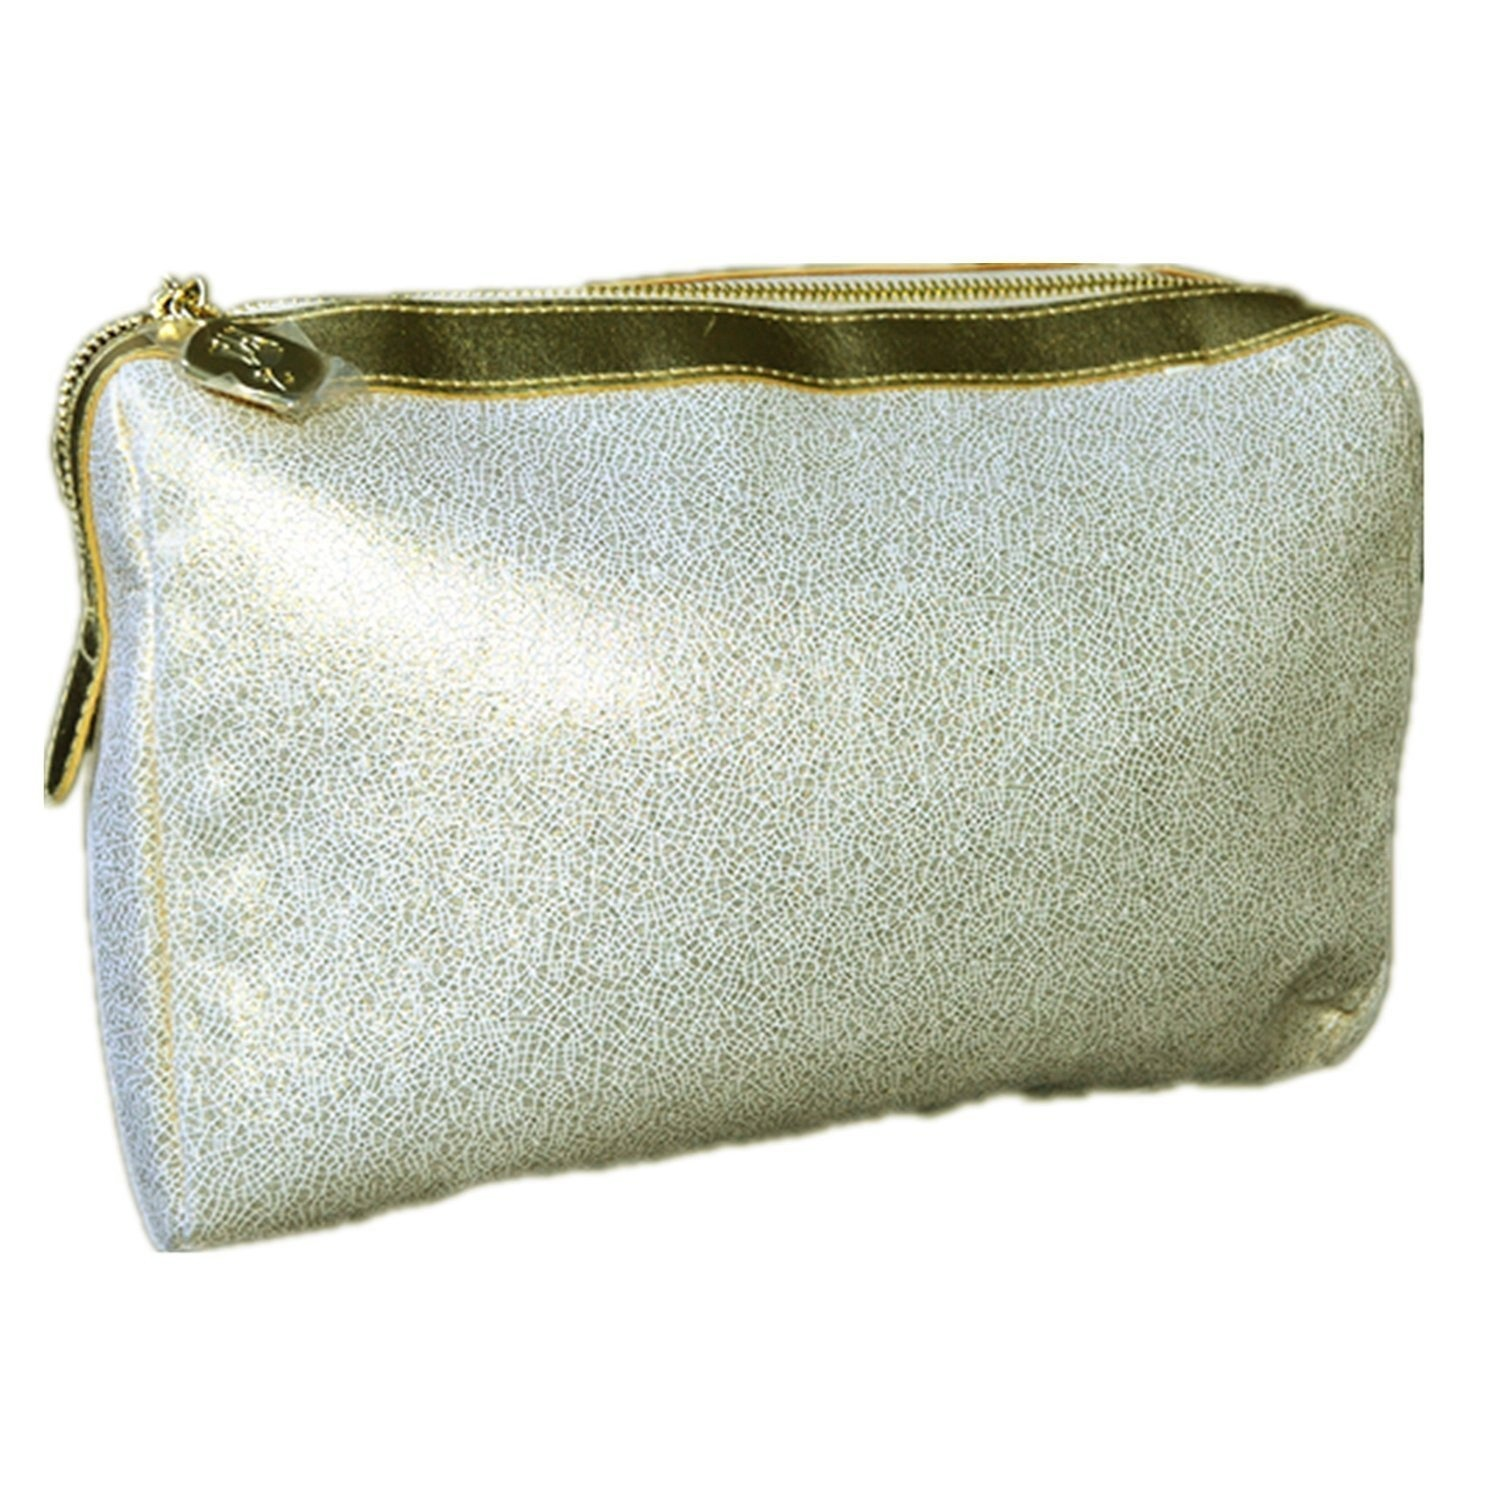 21457ca7e2f5 Lancome Luxury Golden-White Faux Leather Cosmetic Bag / Make-up Pouch /  Toiletry Bag / Wash Bag Travel Accessory 25*18*8.5cm